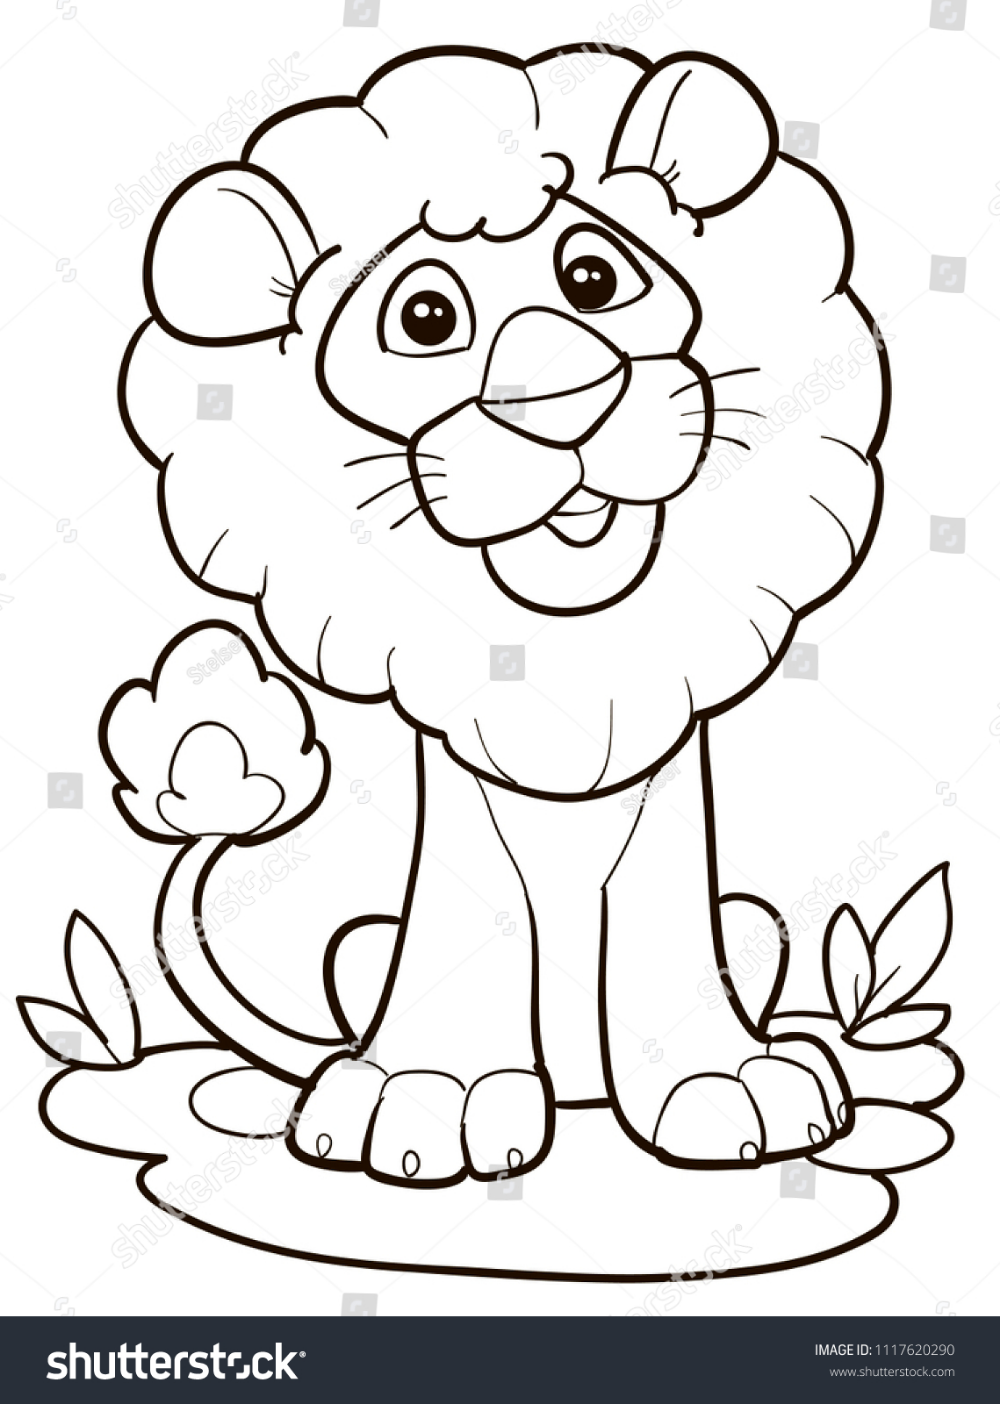 Coloring Page Outline Cartoon Cute Lion Stock Vector Royalty Free